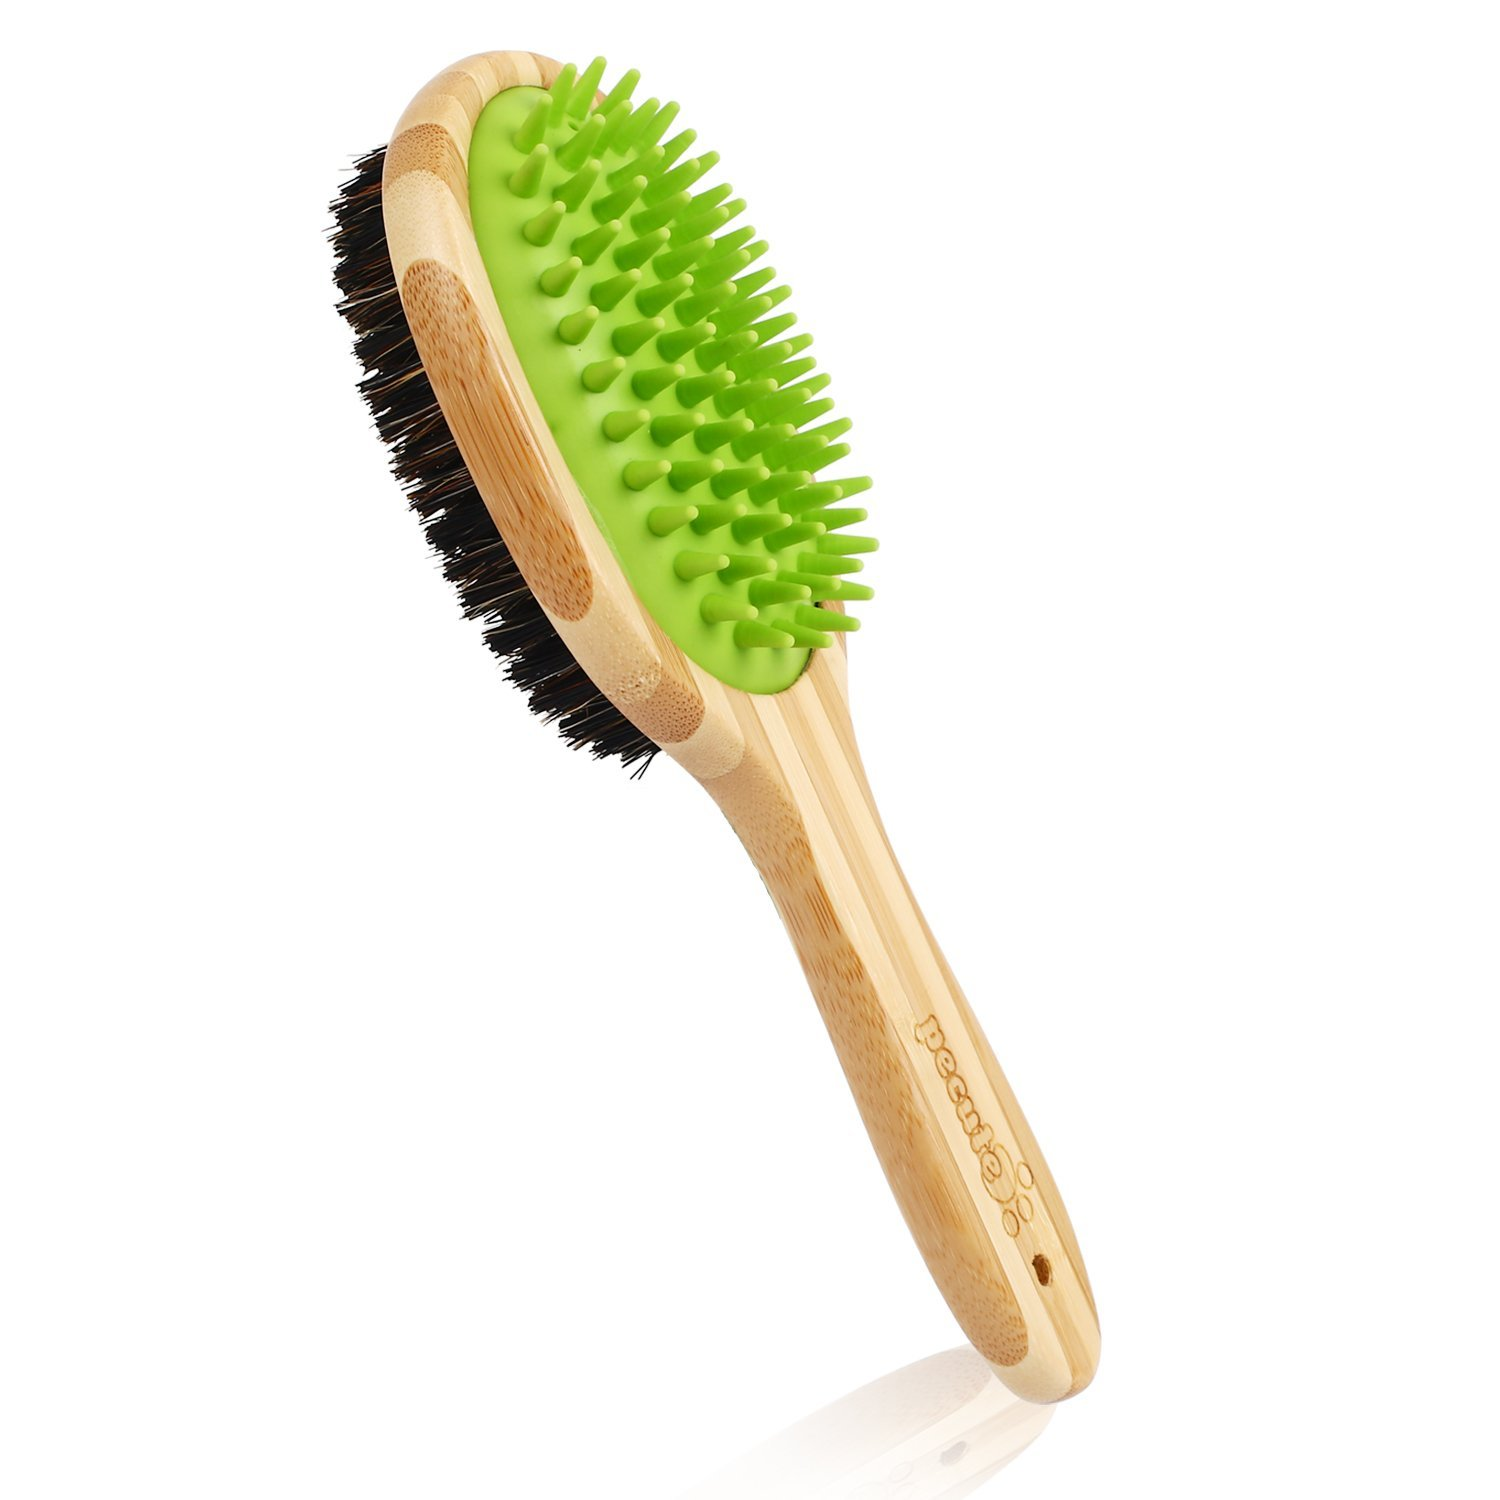 Pecute Dog Bath Brush, Pet Dog Grooming Brush for Massage and Shedding, Double Sided Bamboo Pet Brush with Bristle Silicone Pin for Dog Cat Long and Short Hair